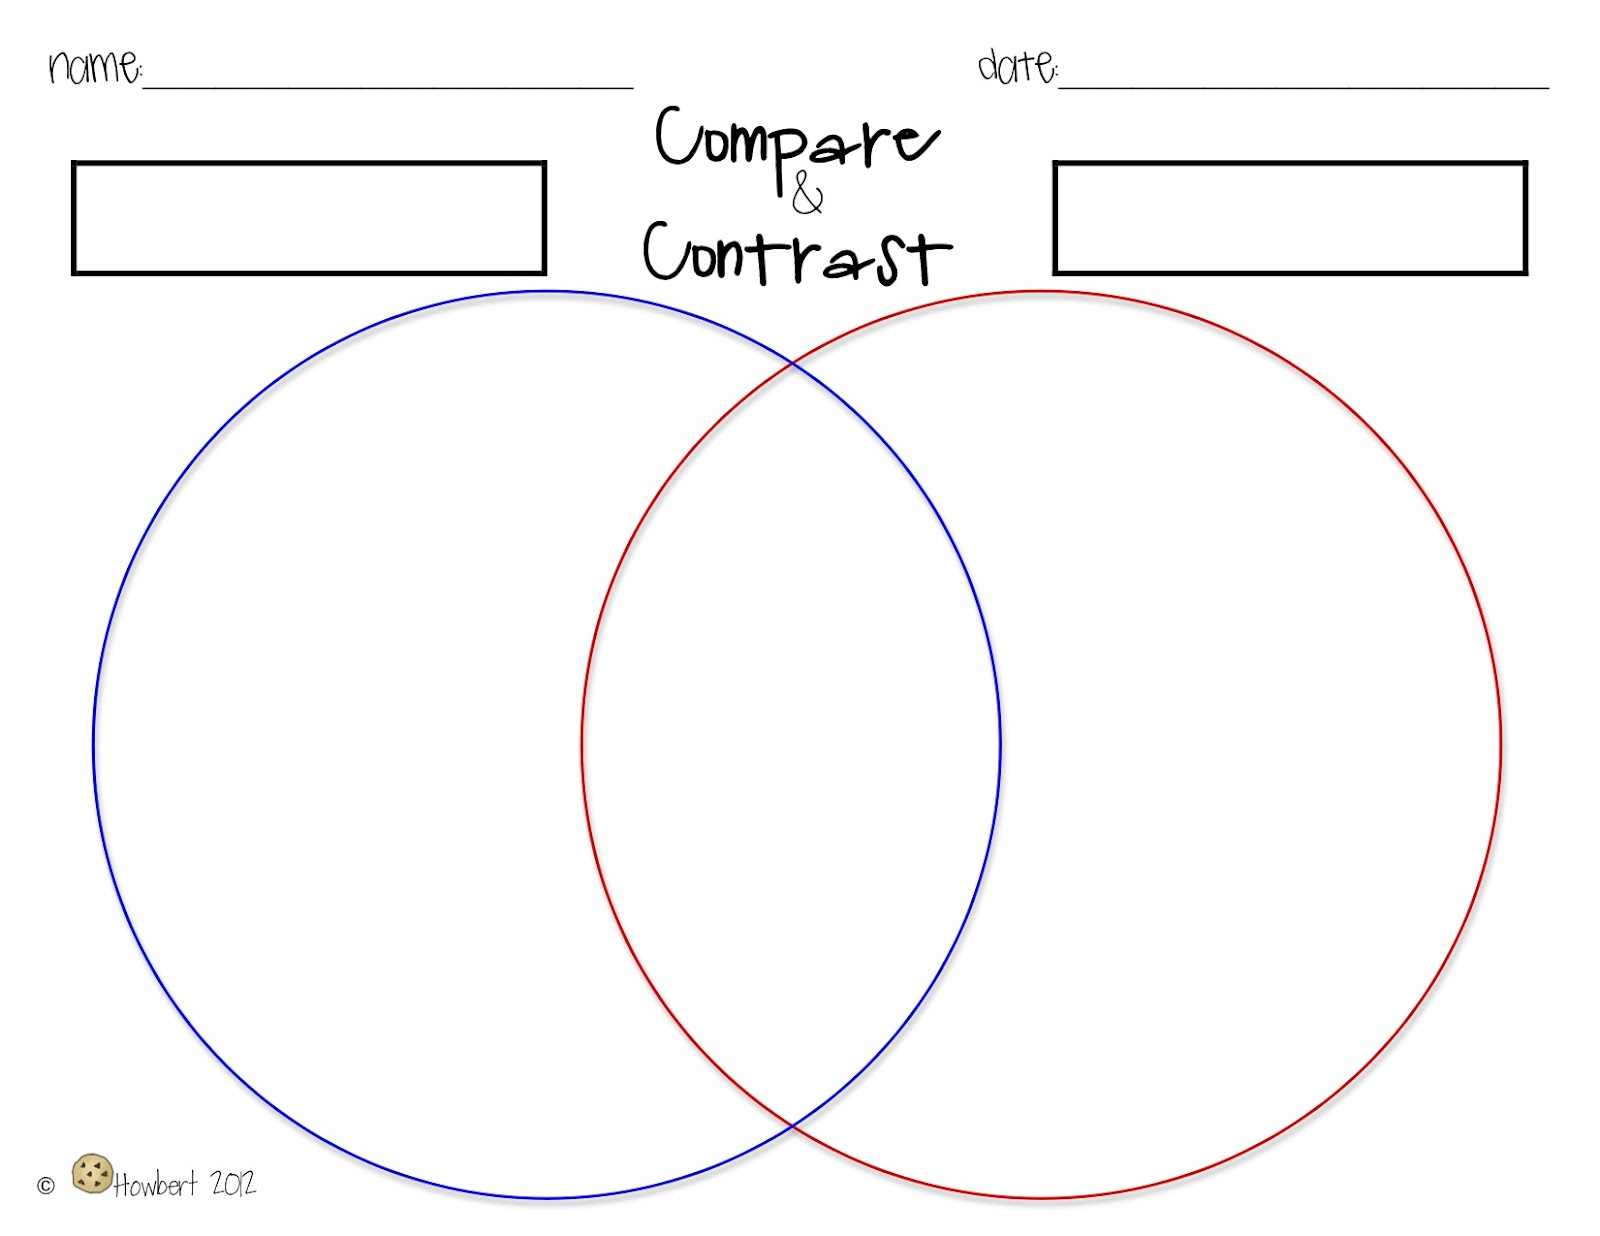 ways to compare and contrast